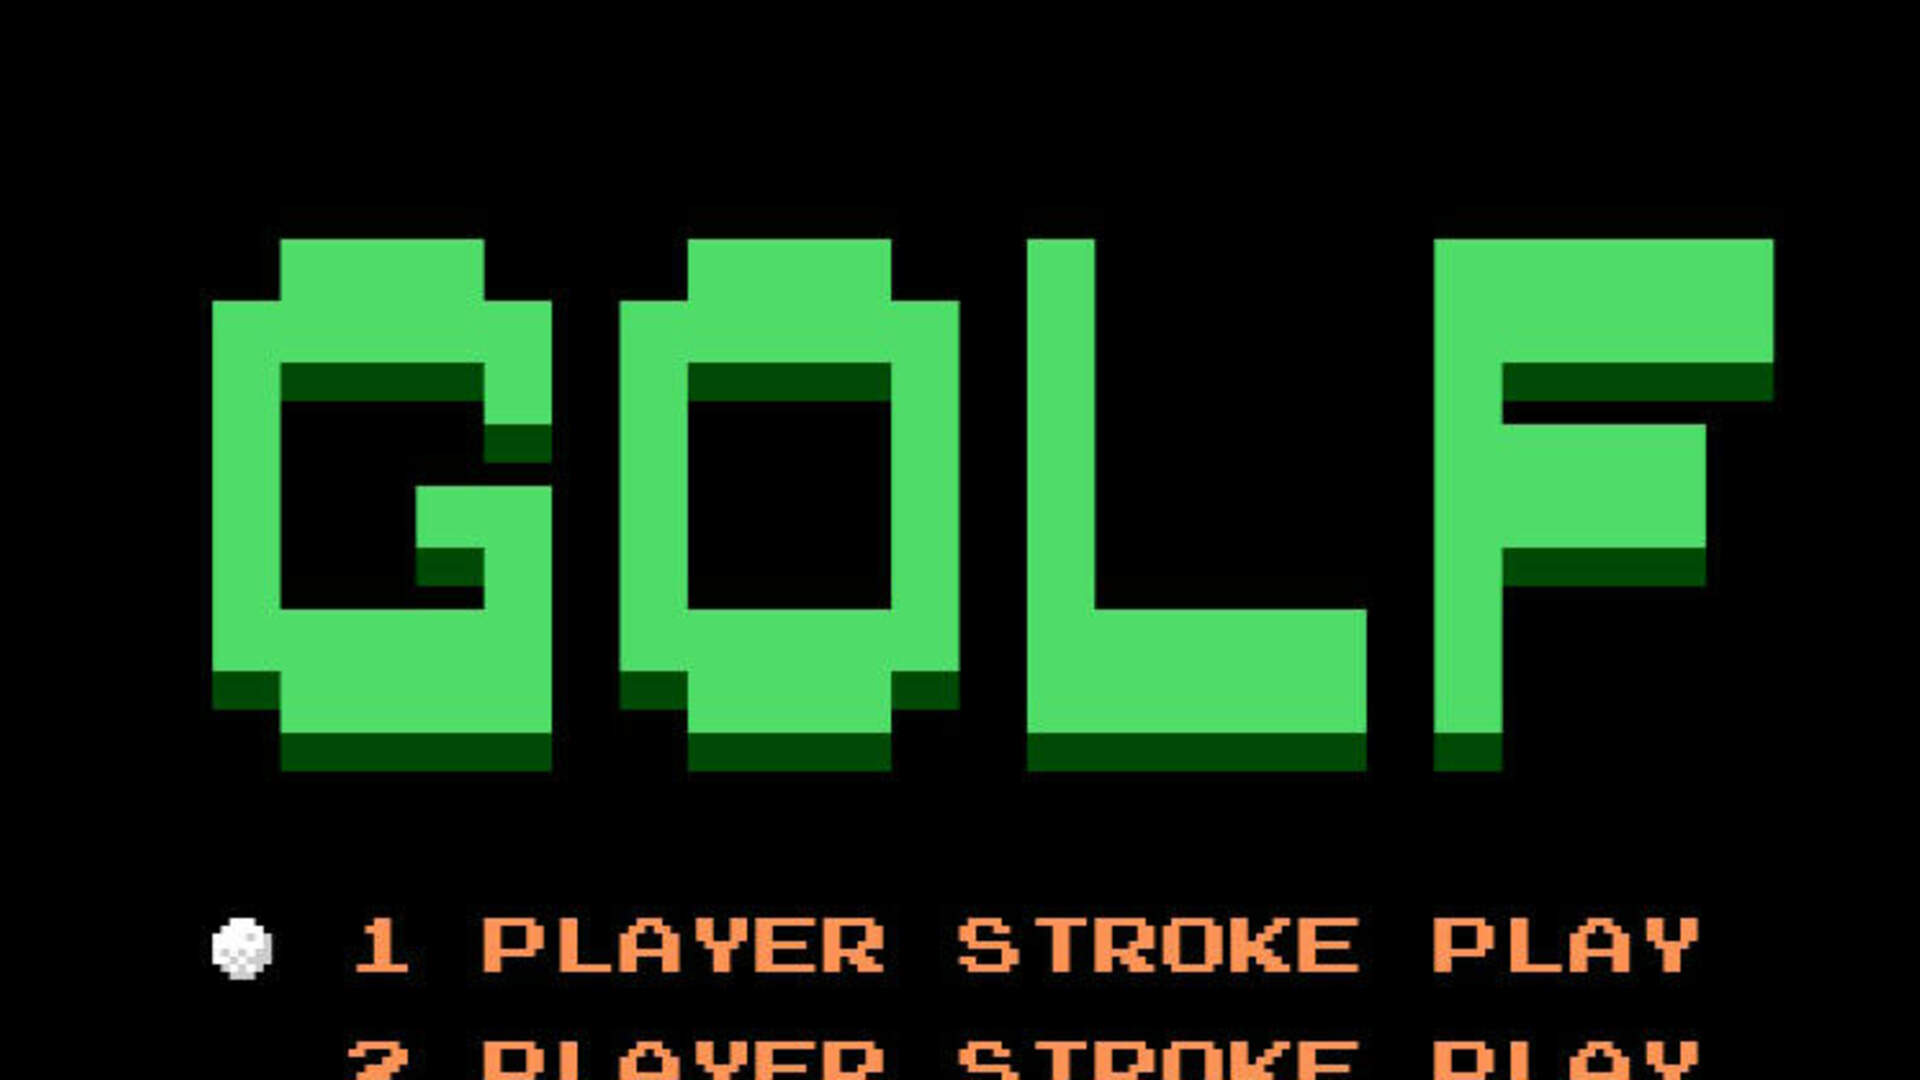 The NES Golf Game Hidden on Every Nintendo Switch Could be a Tribute to Satoru Iwata